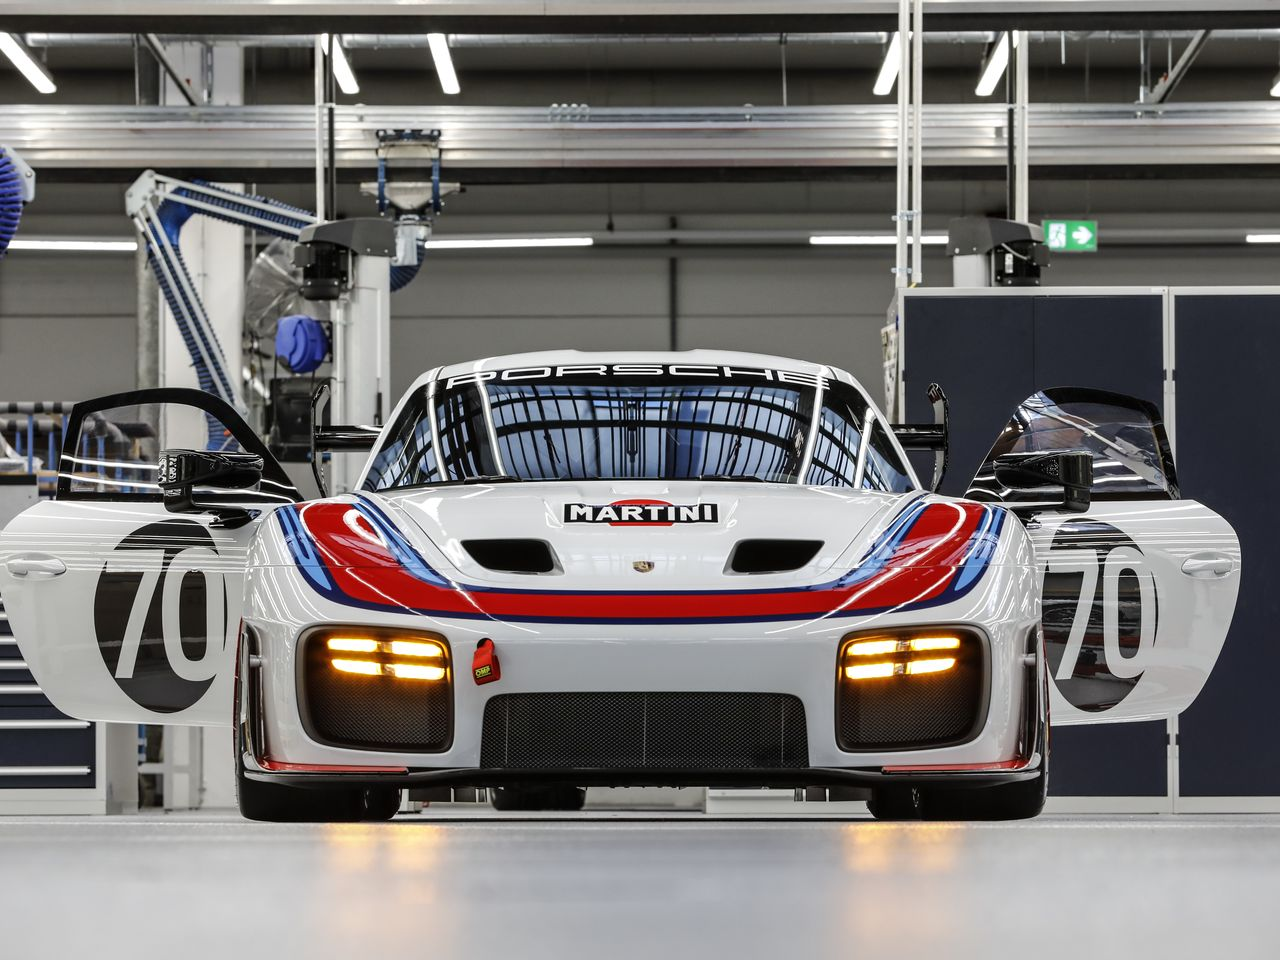 The sloping hood and low-slung LED headlights characterize the front of the new Porsche 935.